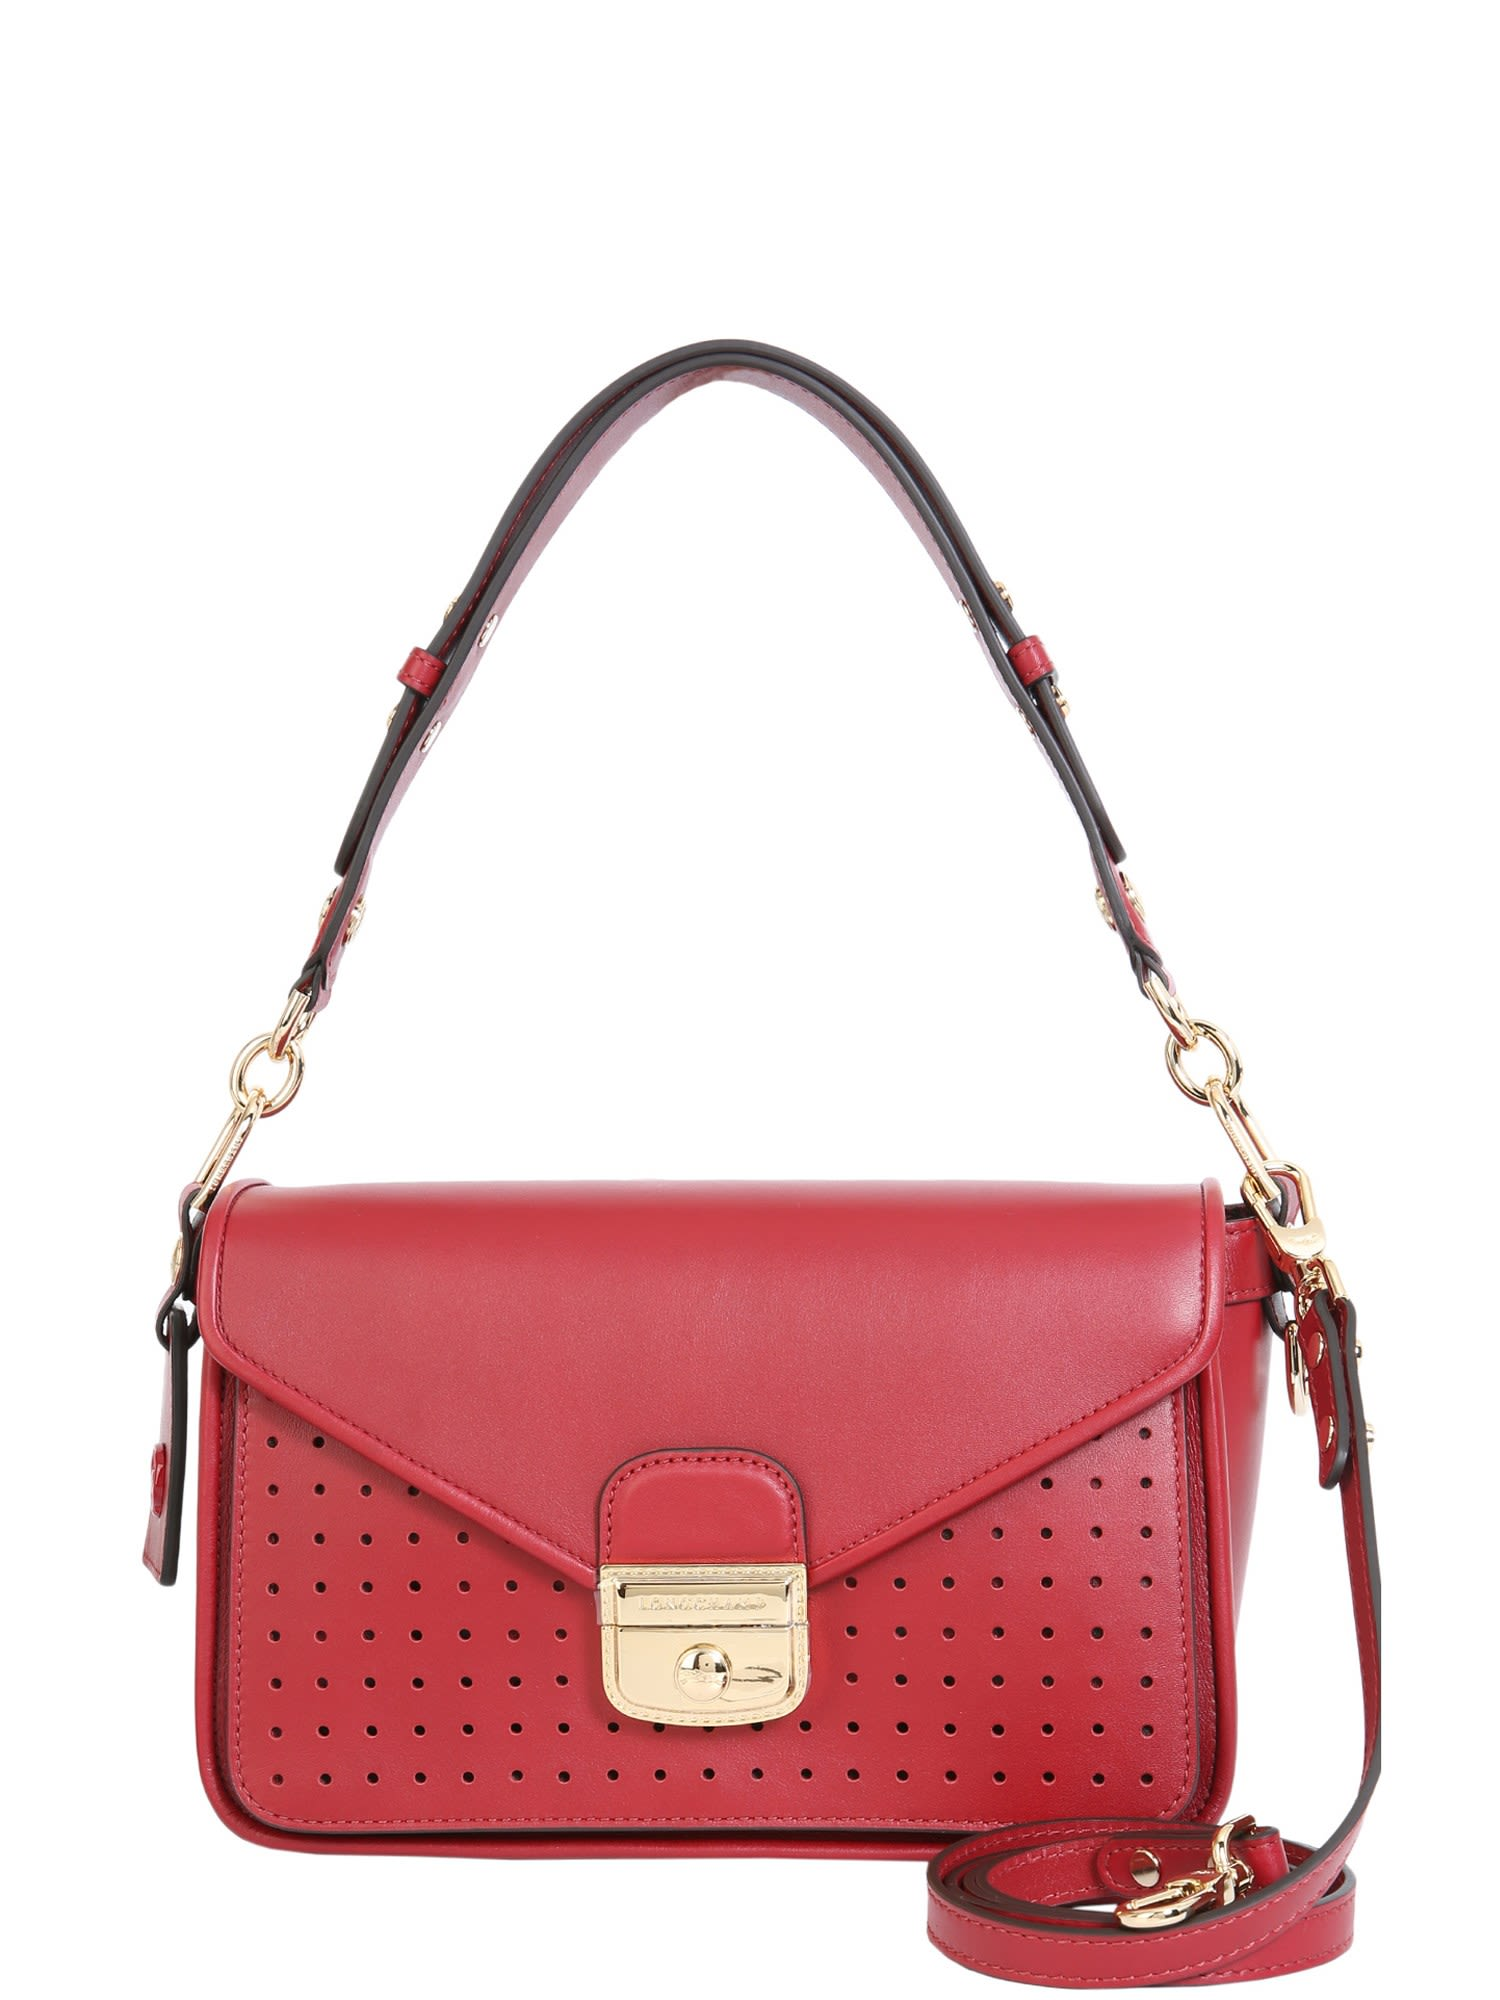 Small Mademoiselle Bag in Bordeaux